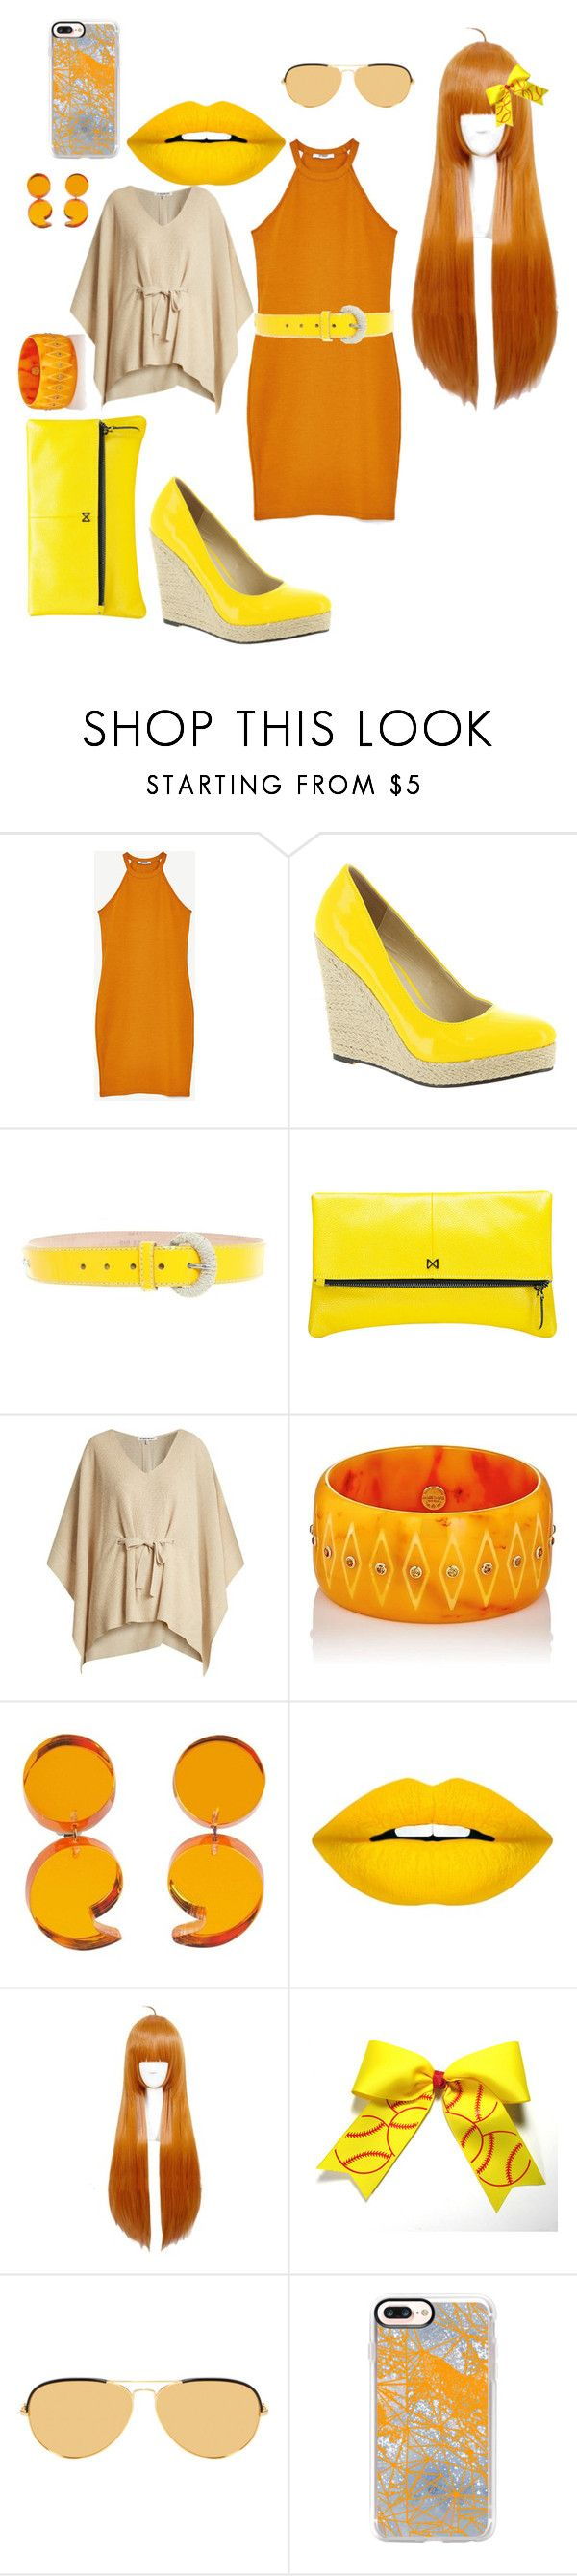 """""""o-n-y"""" by crythin ❤ liked on Polyvore featuring Michael Antonio, D&G, MOFE, Elizabeth and James, Mark Davis, Forever 21, Linda Farrow and Casetify"""